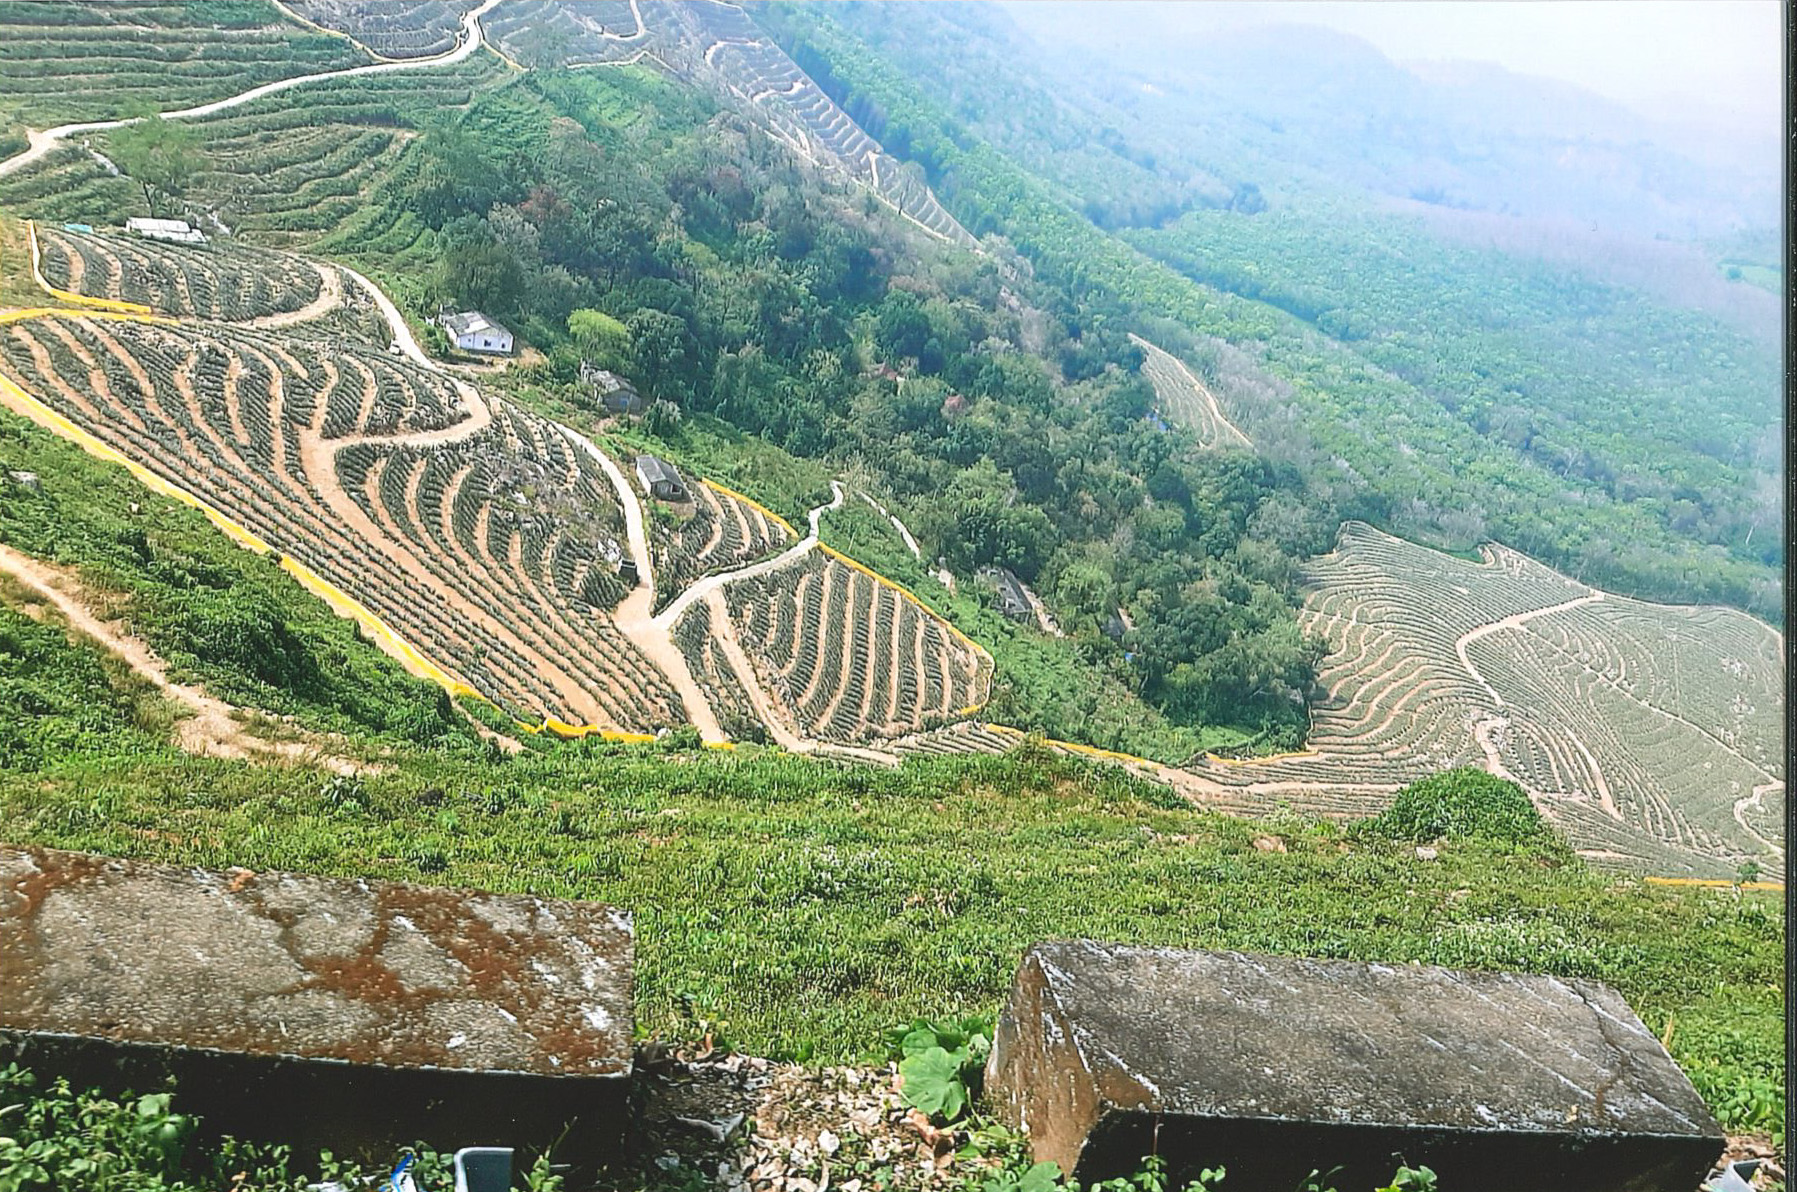 A photo showing a patchwork of farmland from a hillside.